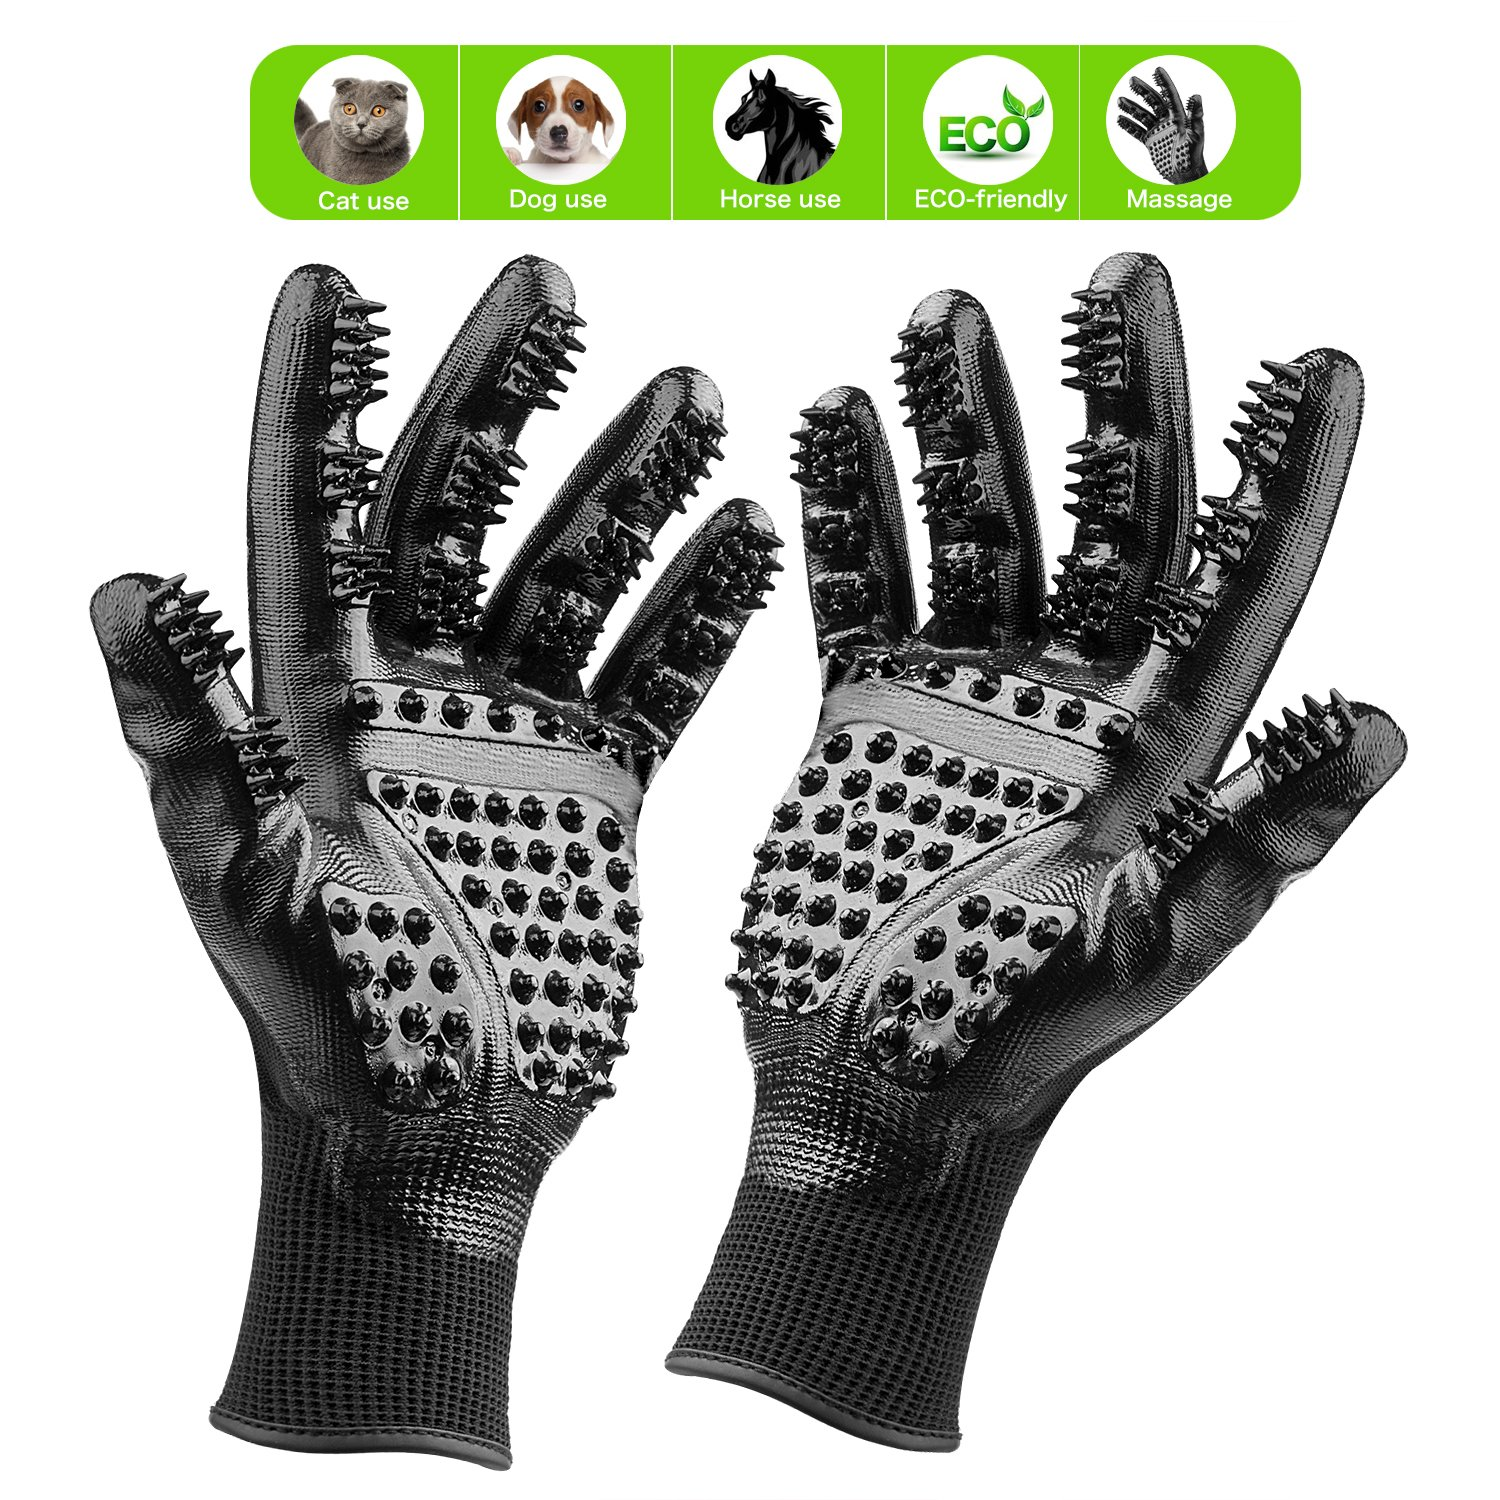 Pet Grooming Glove: Cat, Horse & Dog Deshedding Gloves With Soft Rounded Nubs & Adjustable Wrist Strap – Pair Of Flexible Brush Mitts For Shedding, Bathing, Massaging & Hair Removal (black)